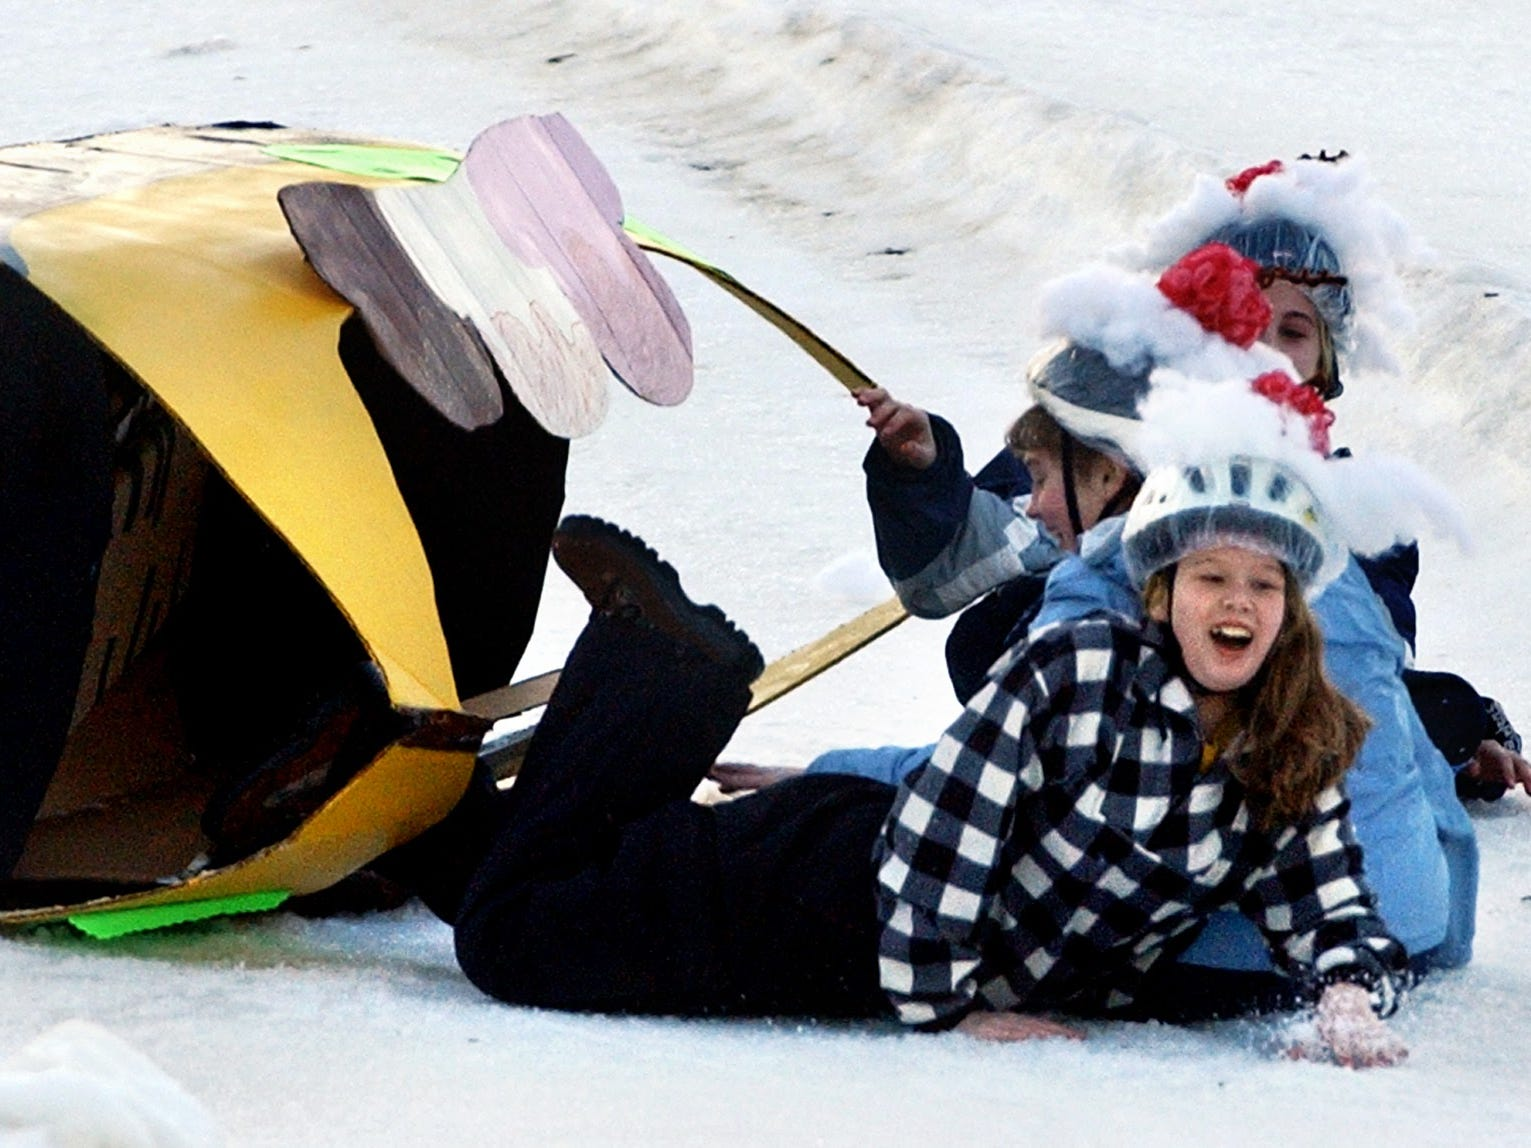 The Banana Rama takes a spill on it's way down the hill. From the front, Breanna Winters, Brandy Baltzen Krysta Myers, all of Dover, got up to make a successful second attempt during the Cardboard Snow Sled Derby at Ski Roundtop January, 27, 2002.